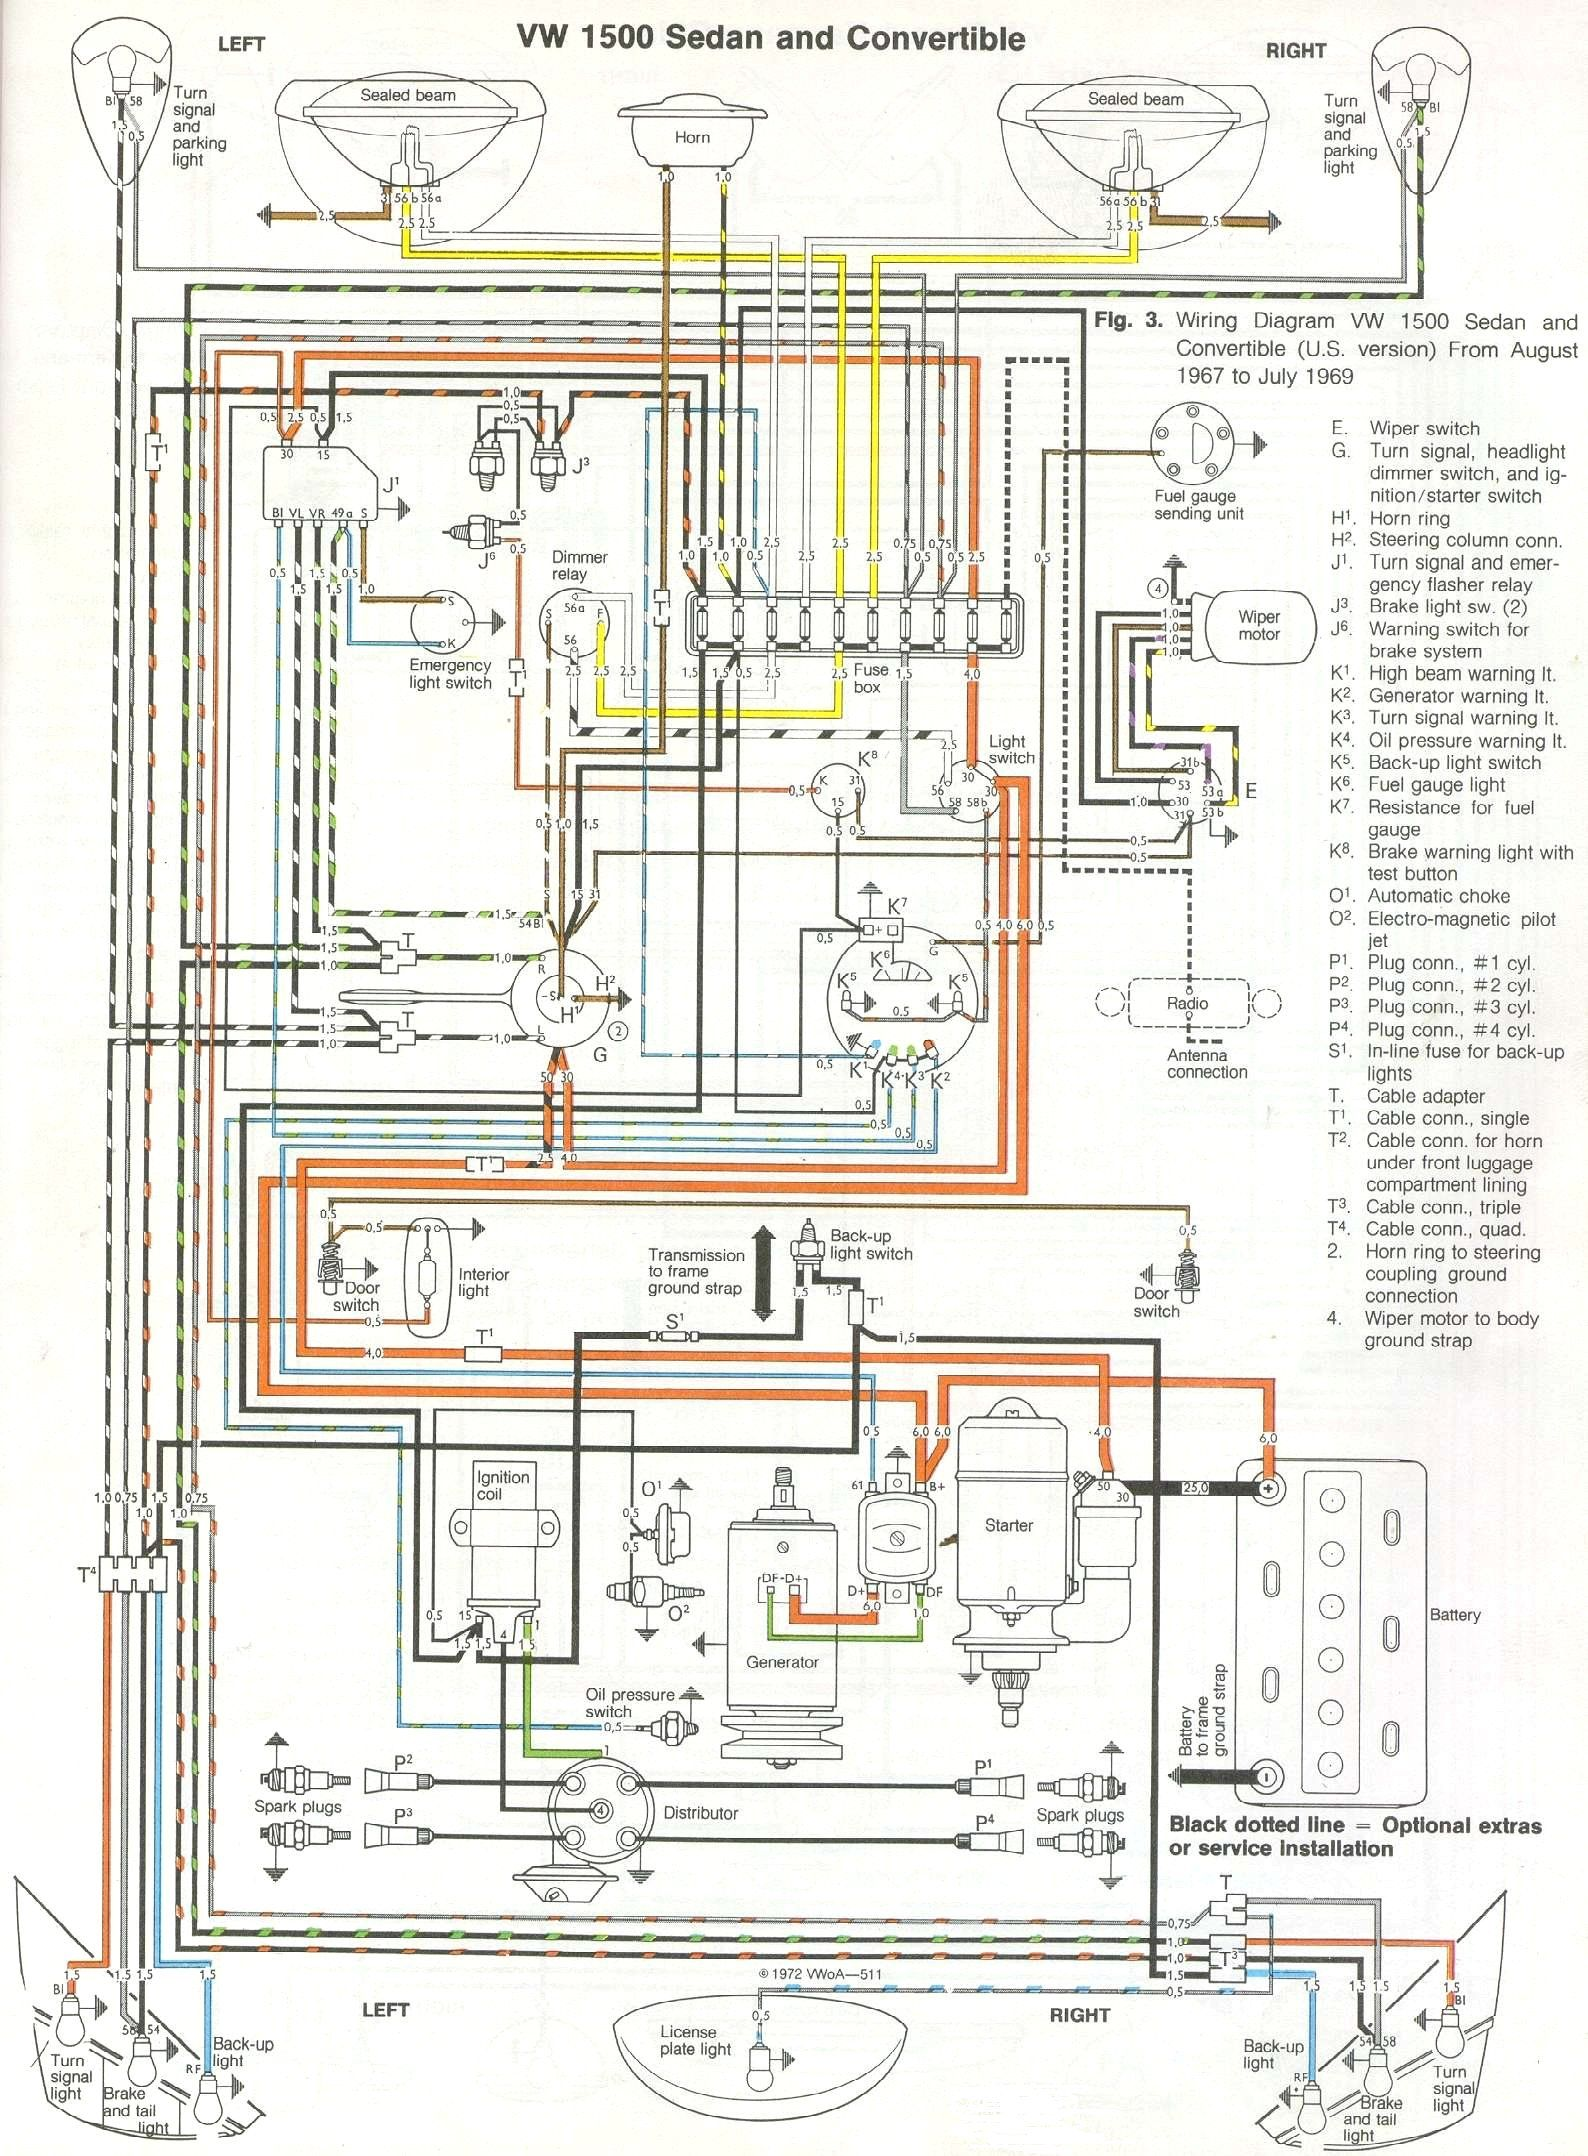 medium resolution of wiring diagram in addition 99 vw jetta engine diagram on 73 vw wiring harness in addition 2001 volkswagen jetta on 70 vw bug wiring